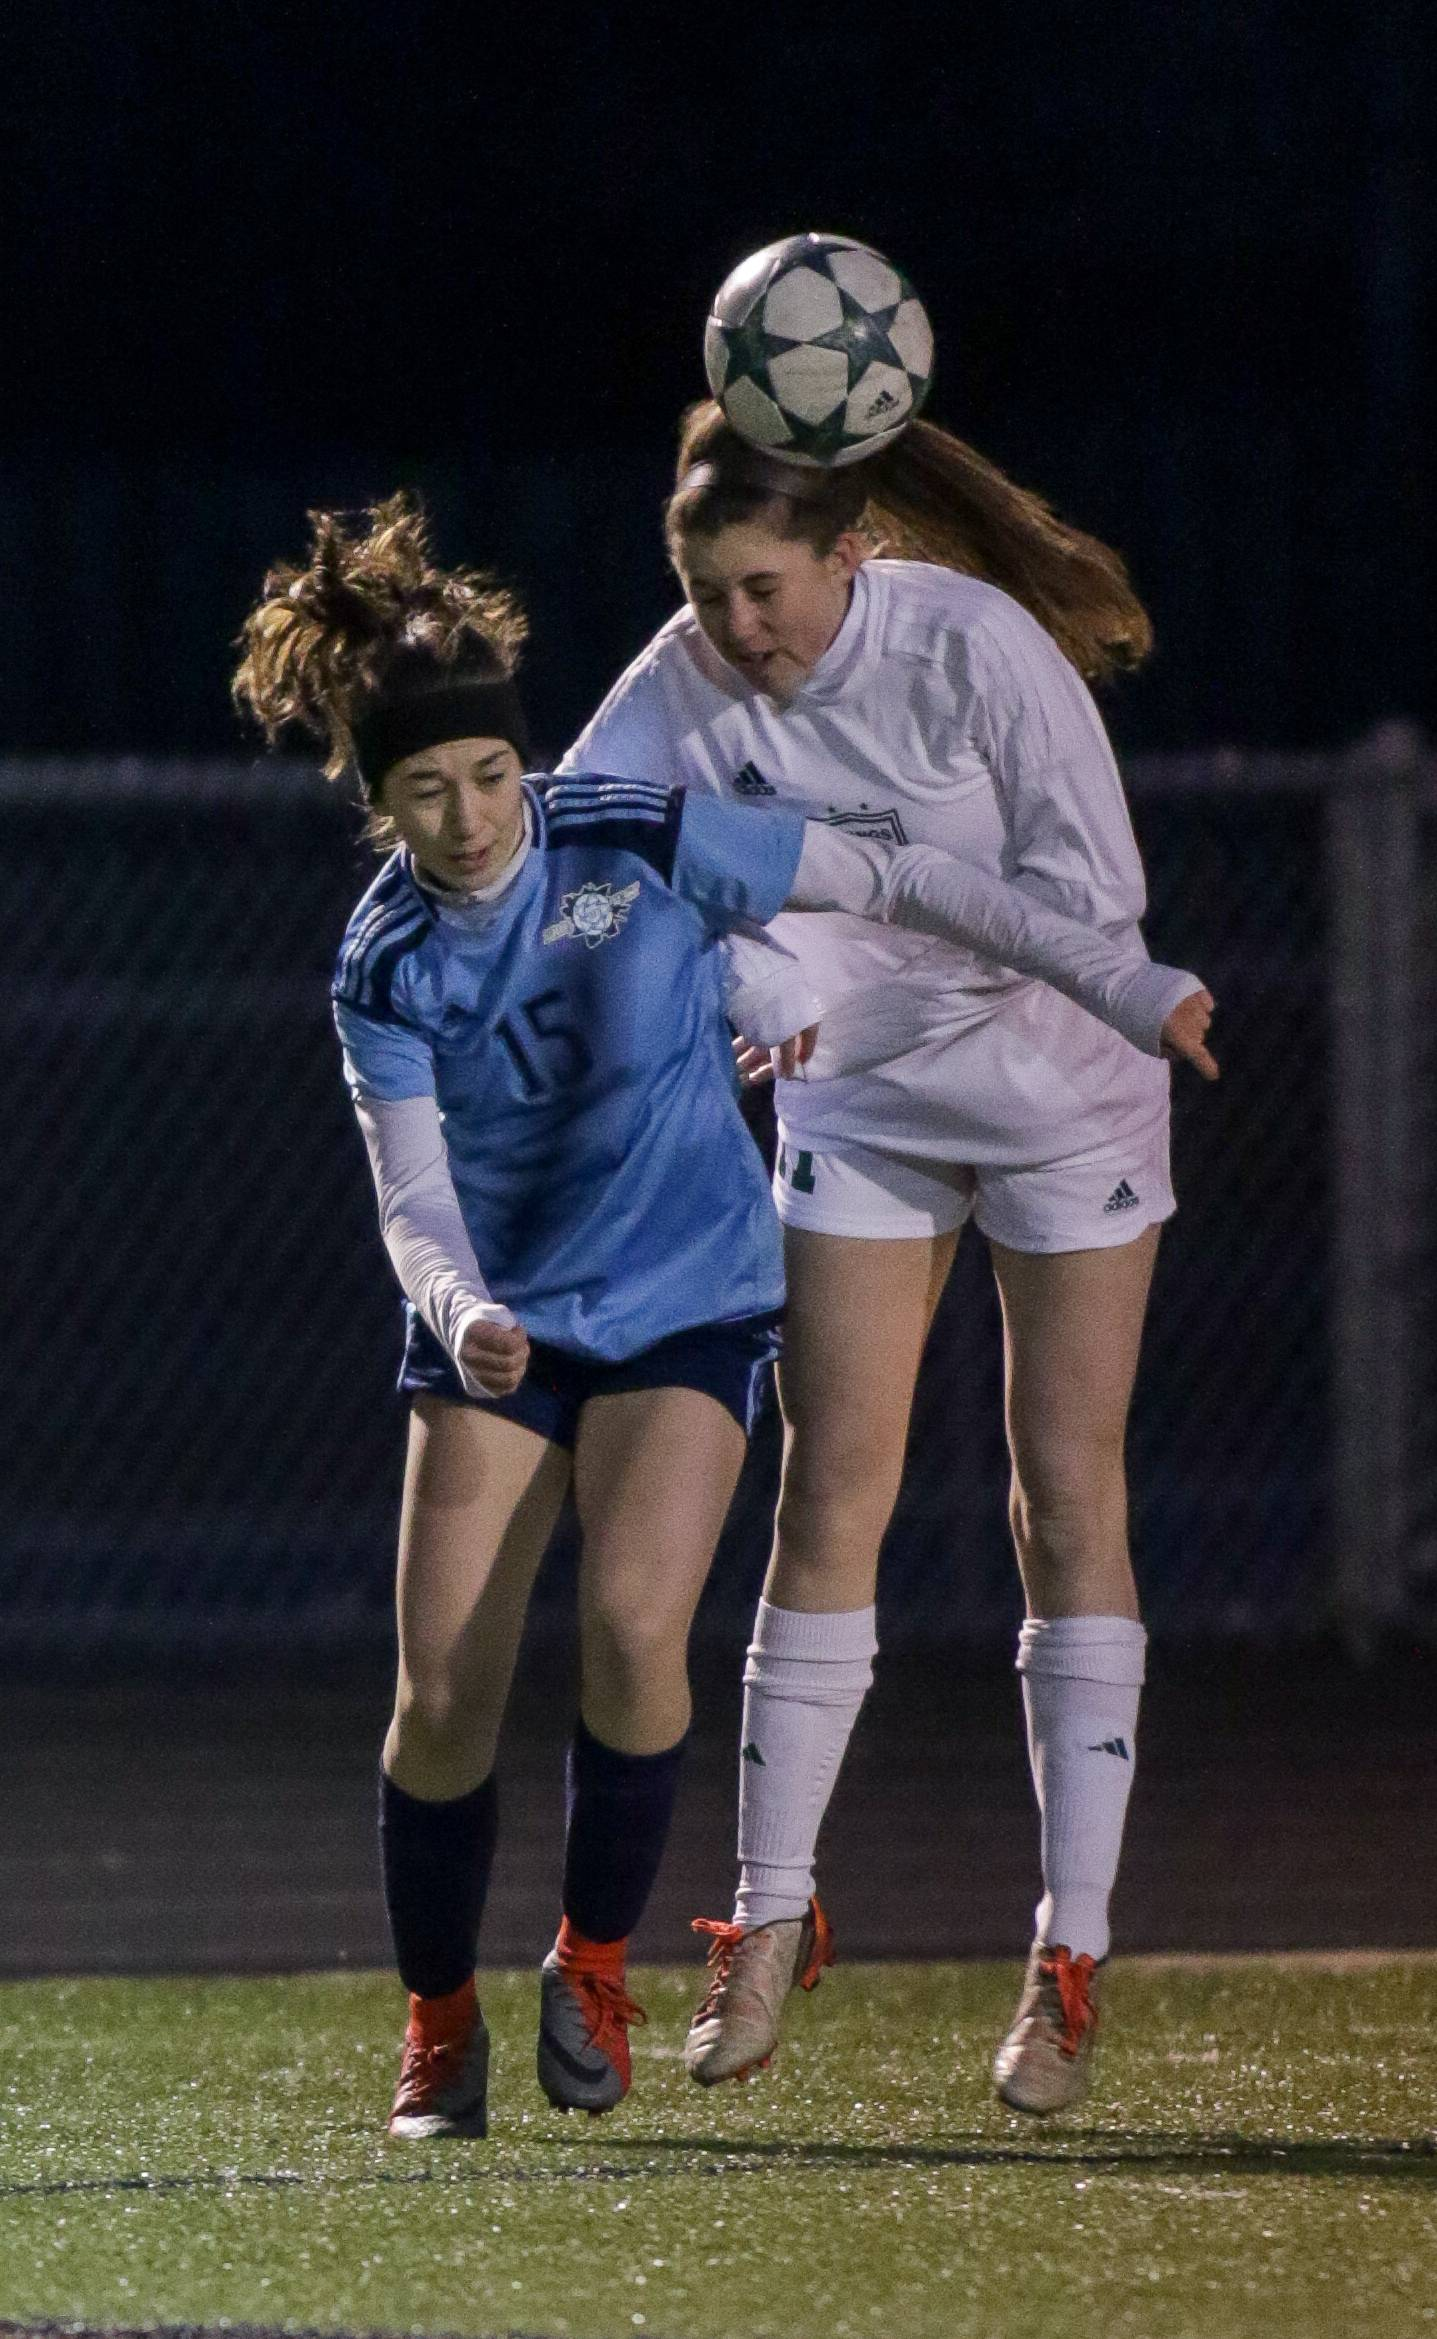 Prospect's Ashley Welk, left, and Fremd's Madeline McCarthy, right, head the ball Thursday in Palatine.